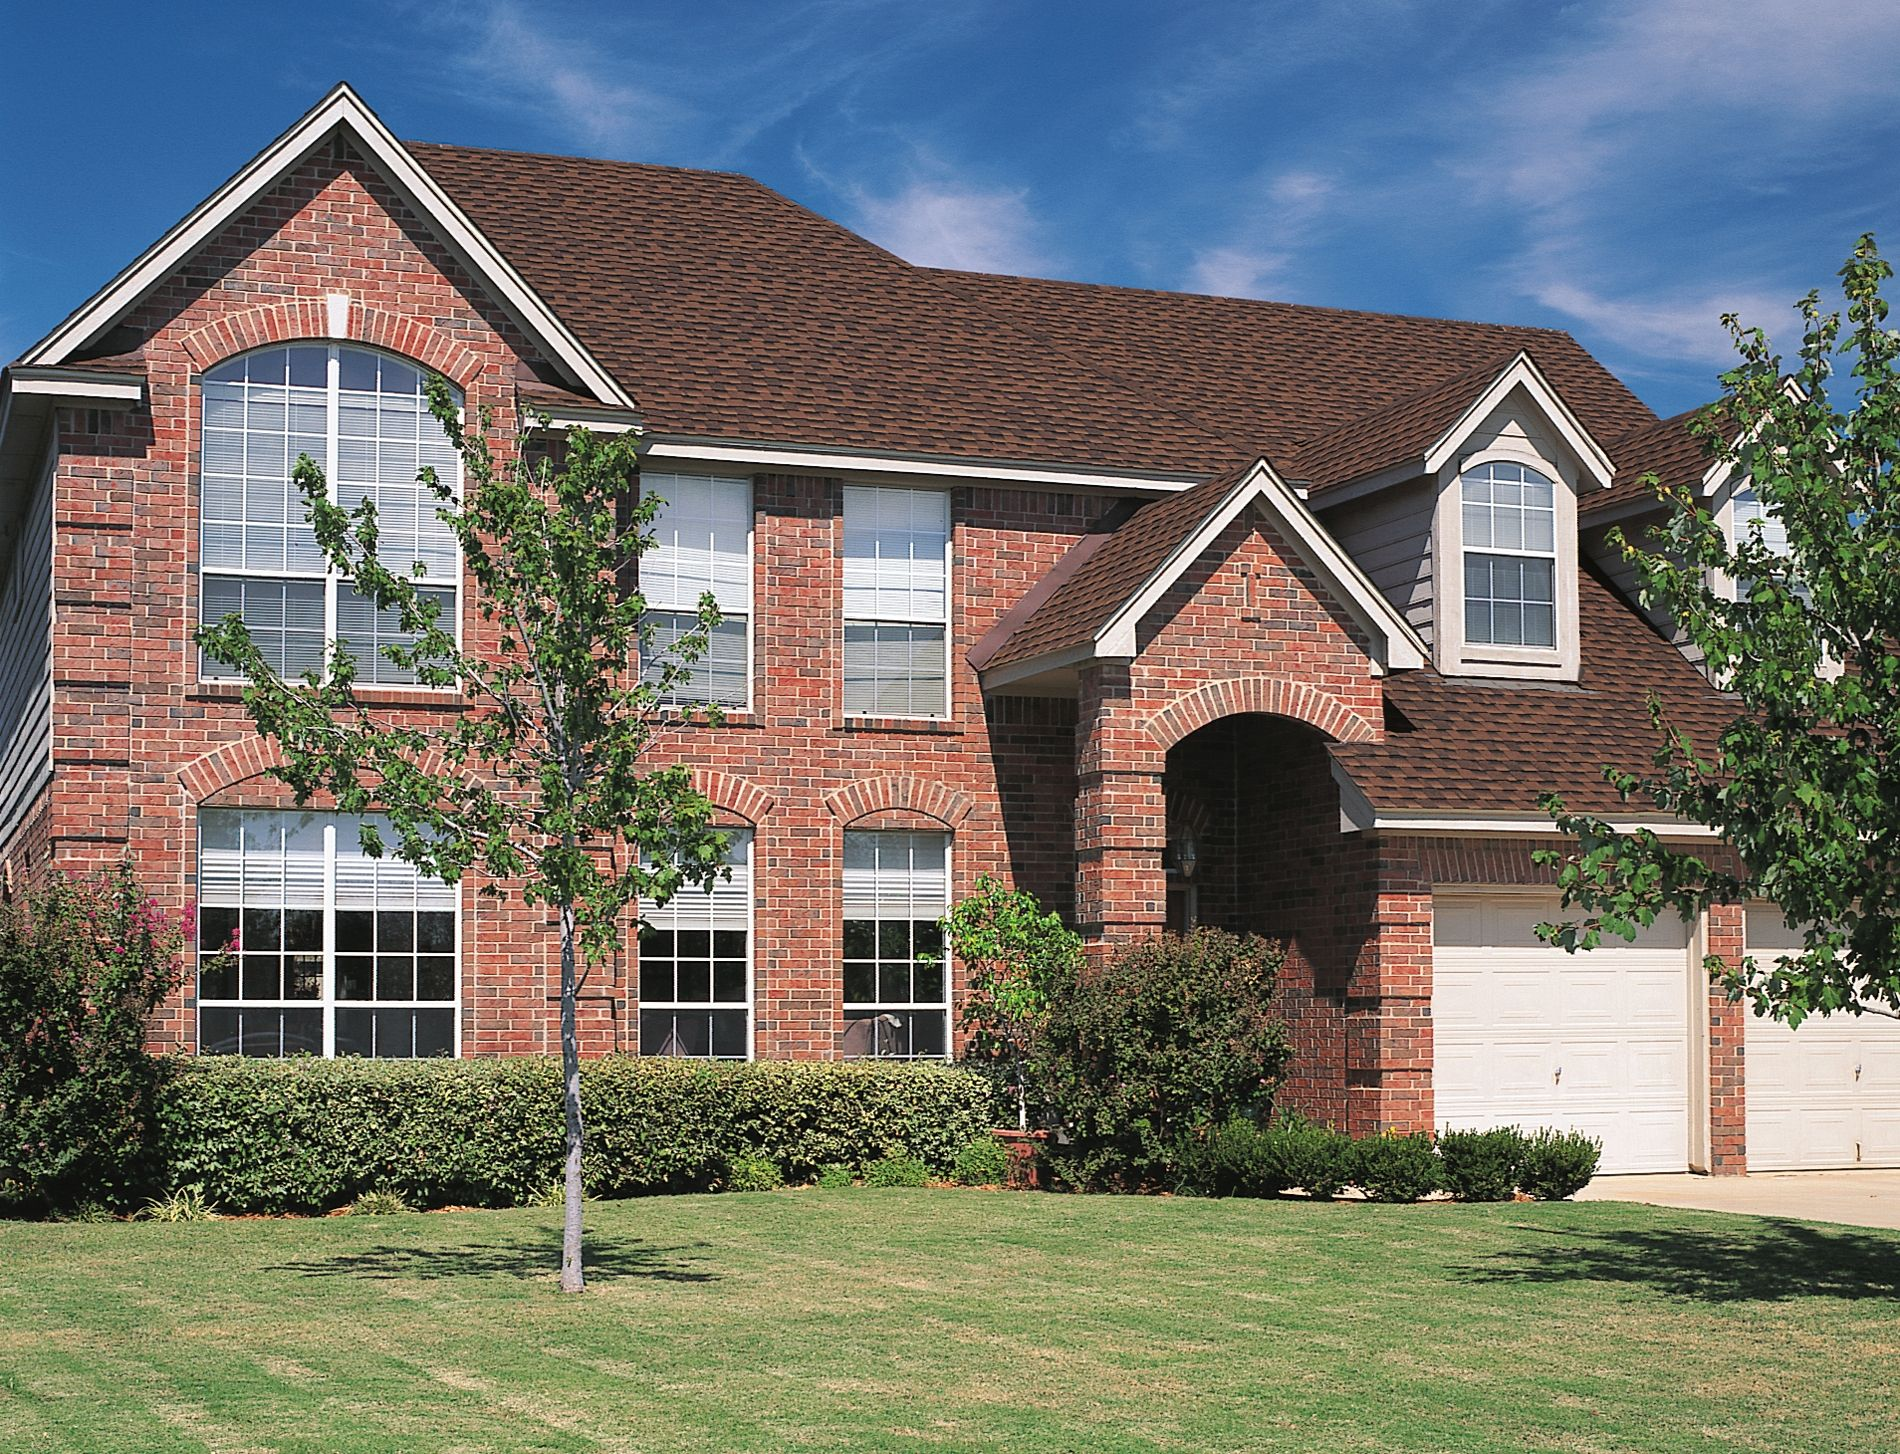 Tri State Windows Siding Roofing Gaf Timberline Hd Hickory Red Brick House Architectural Shingles Roof Shingle Colors